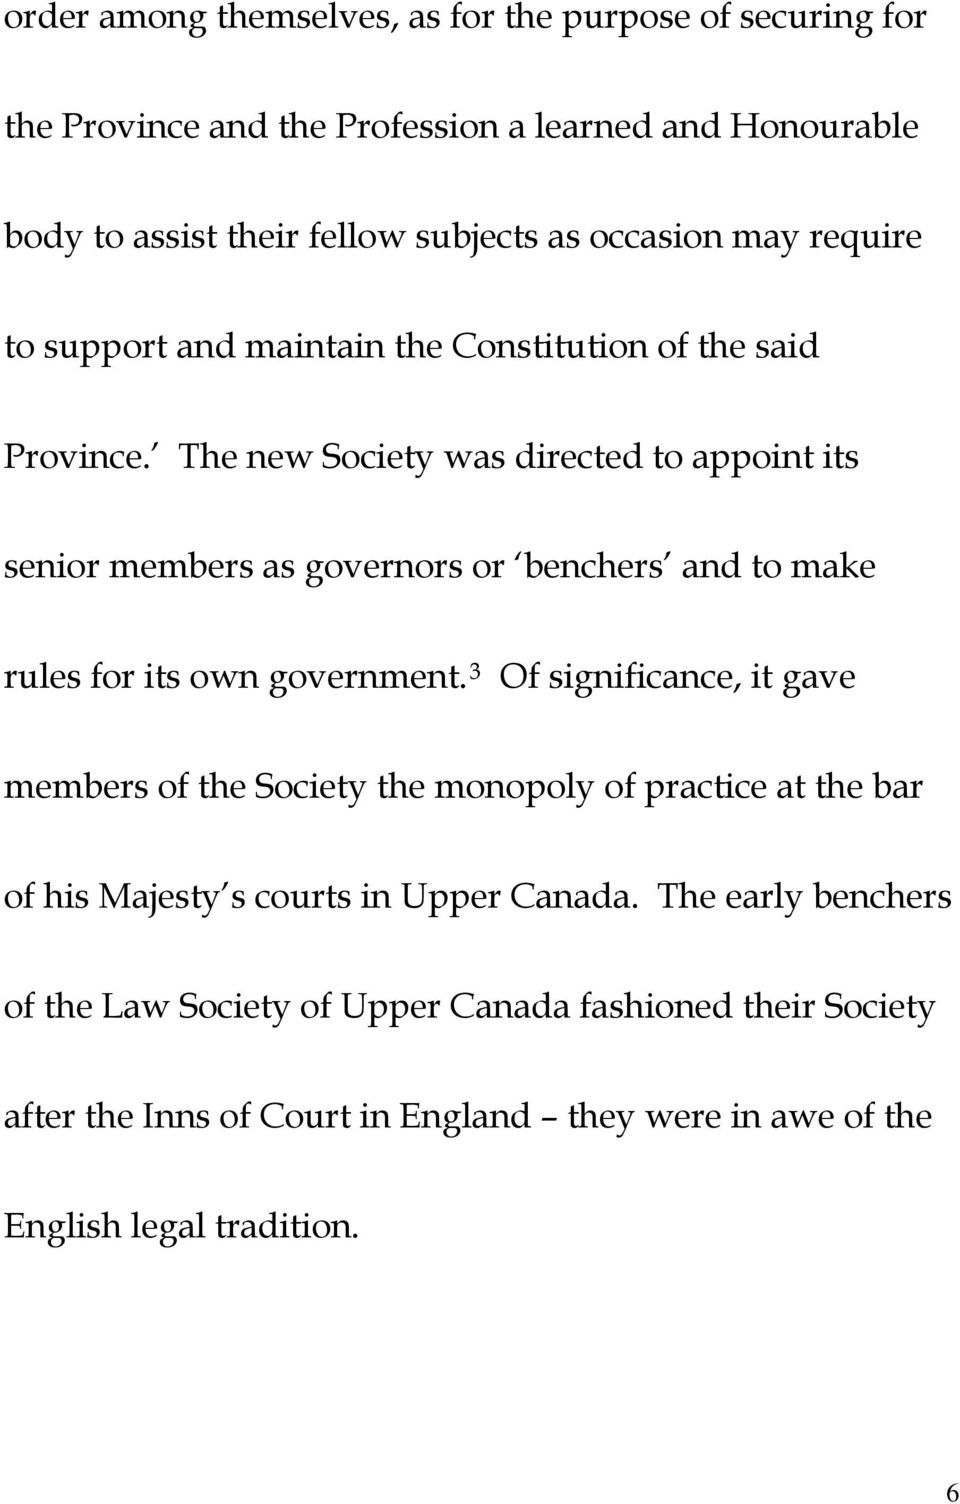 The new Society was directed to appoint its senior members as governors or benchers and to make rules for its own government.